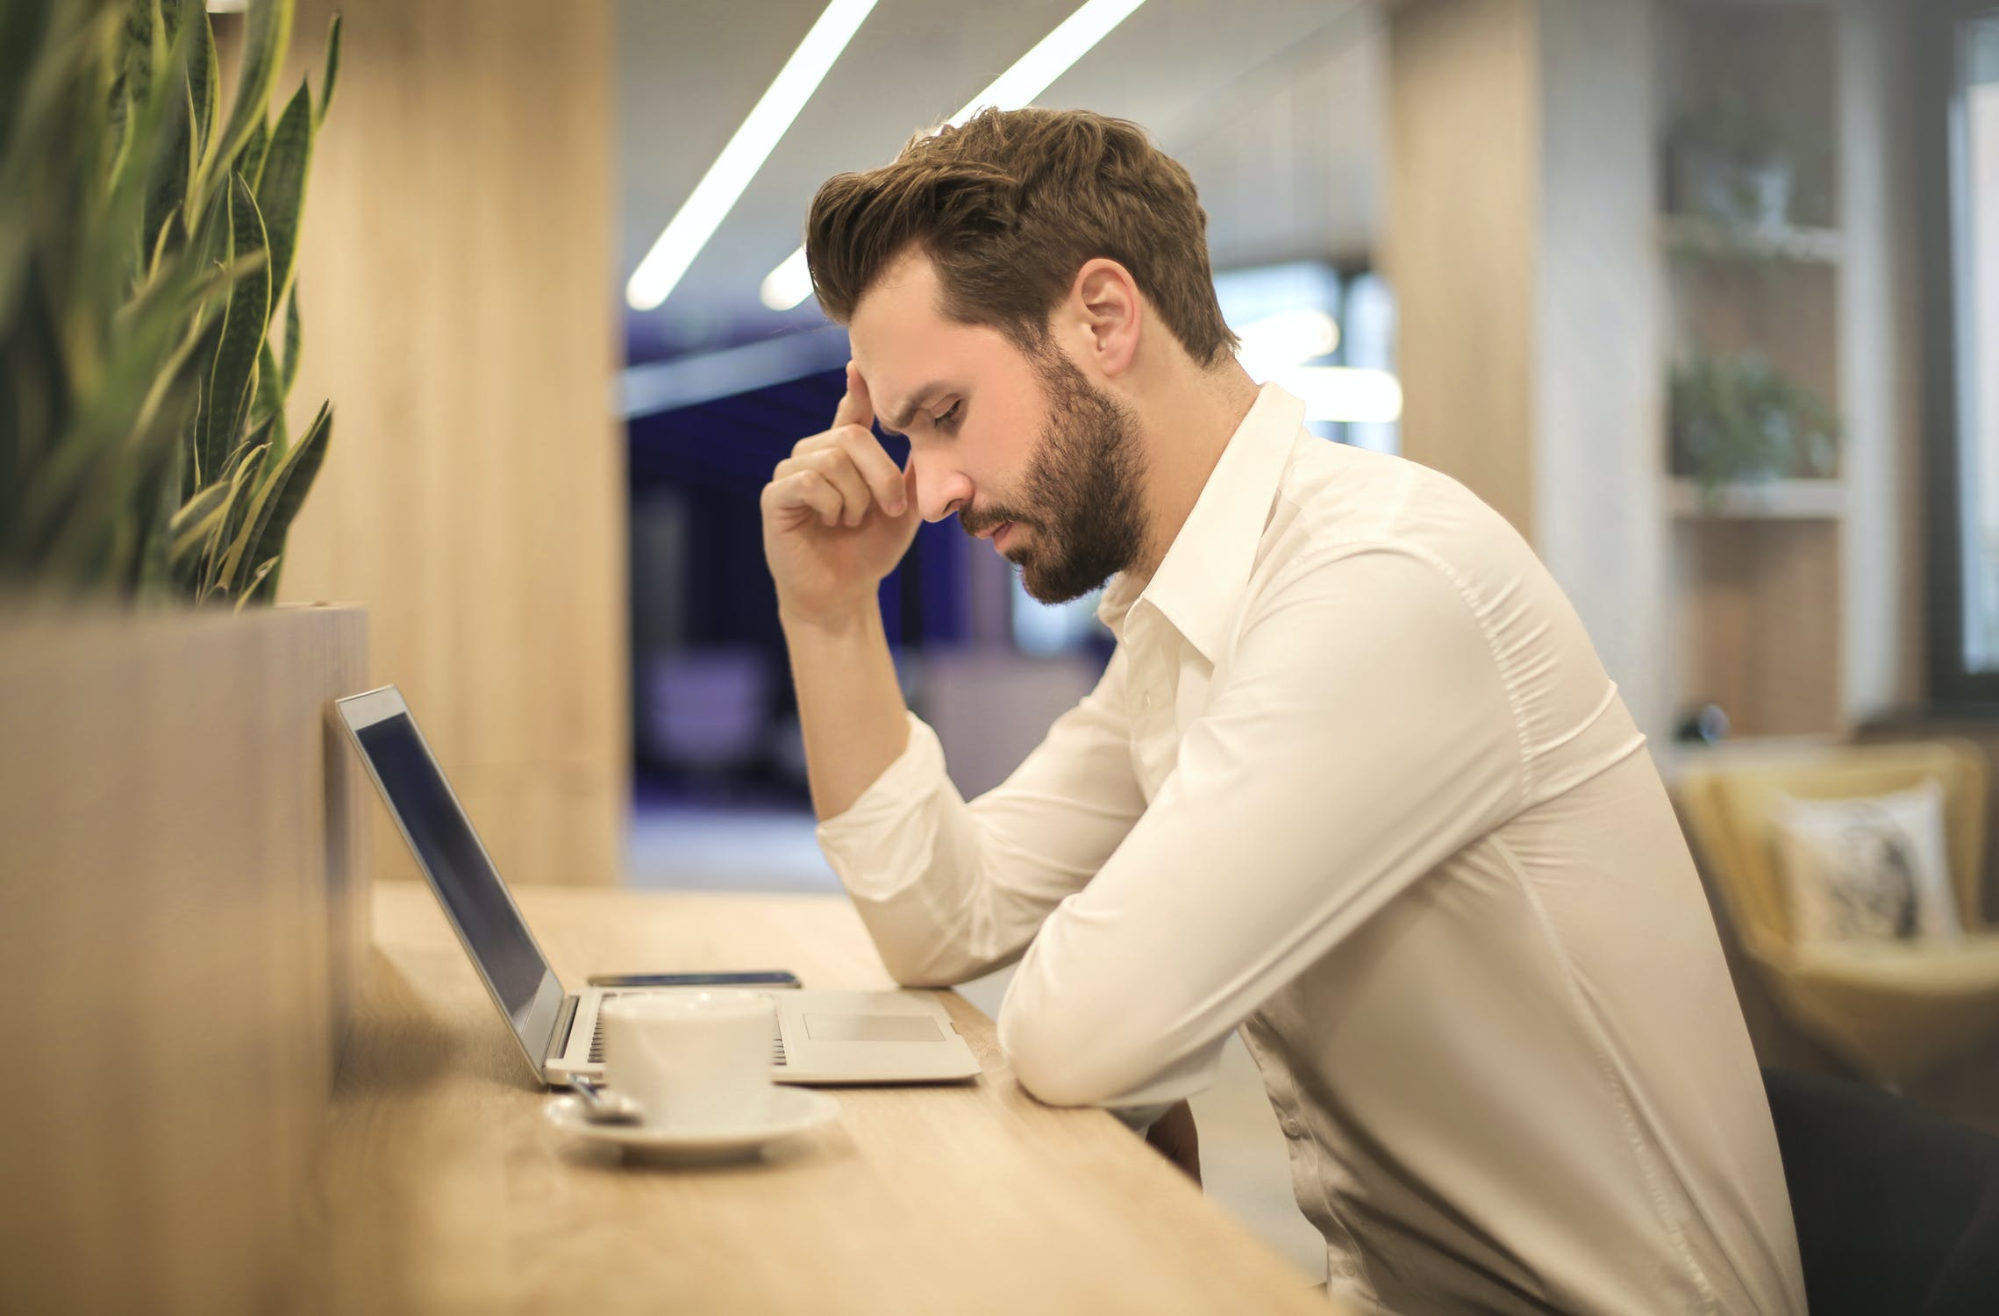 Employer thinking if Unlimited PTO is right for his team